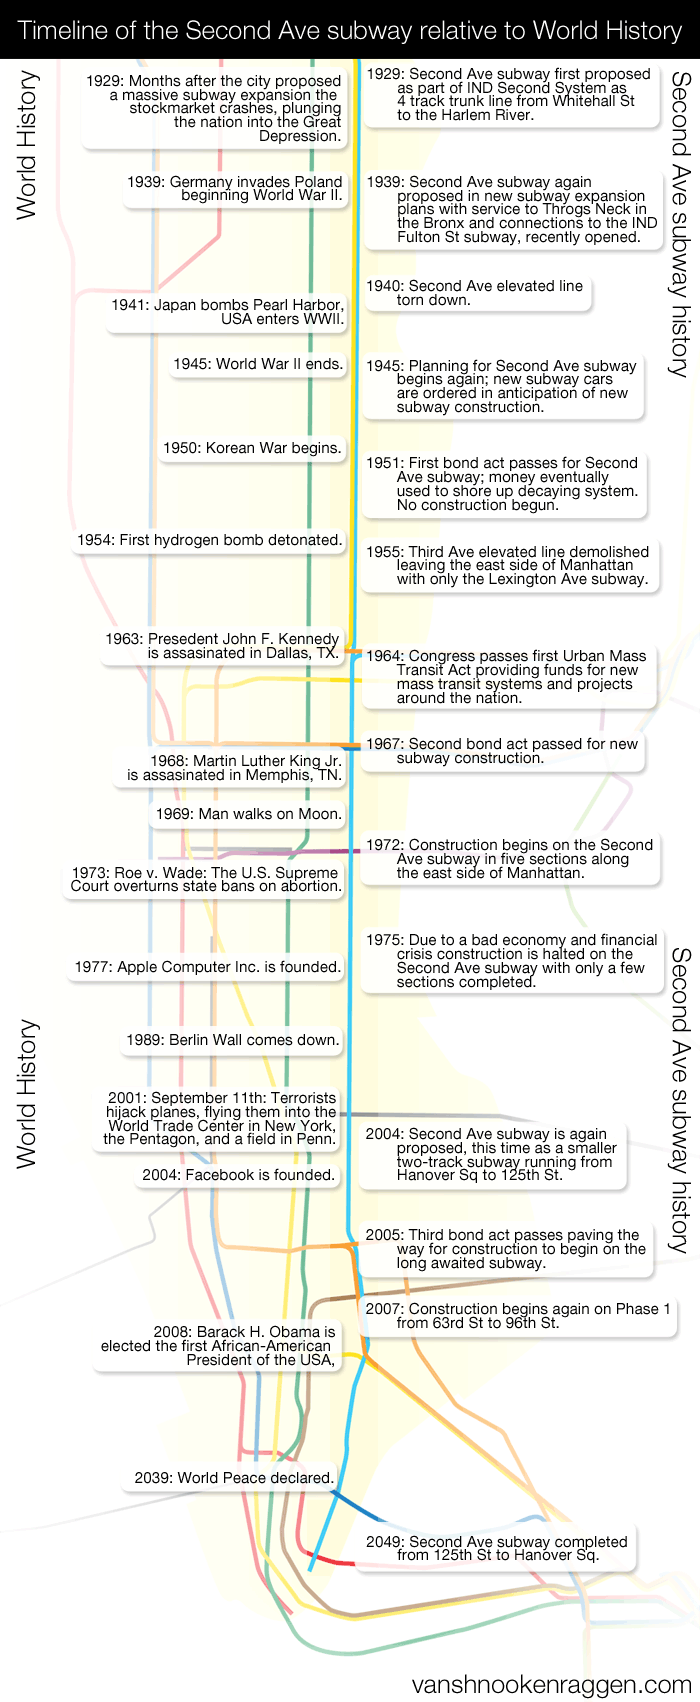 Timeline of the Second Ave subway relative to World History.